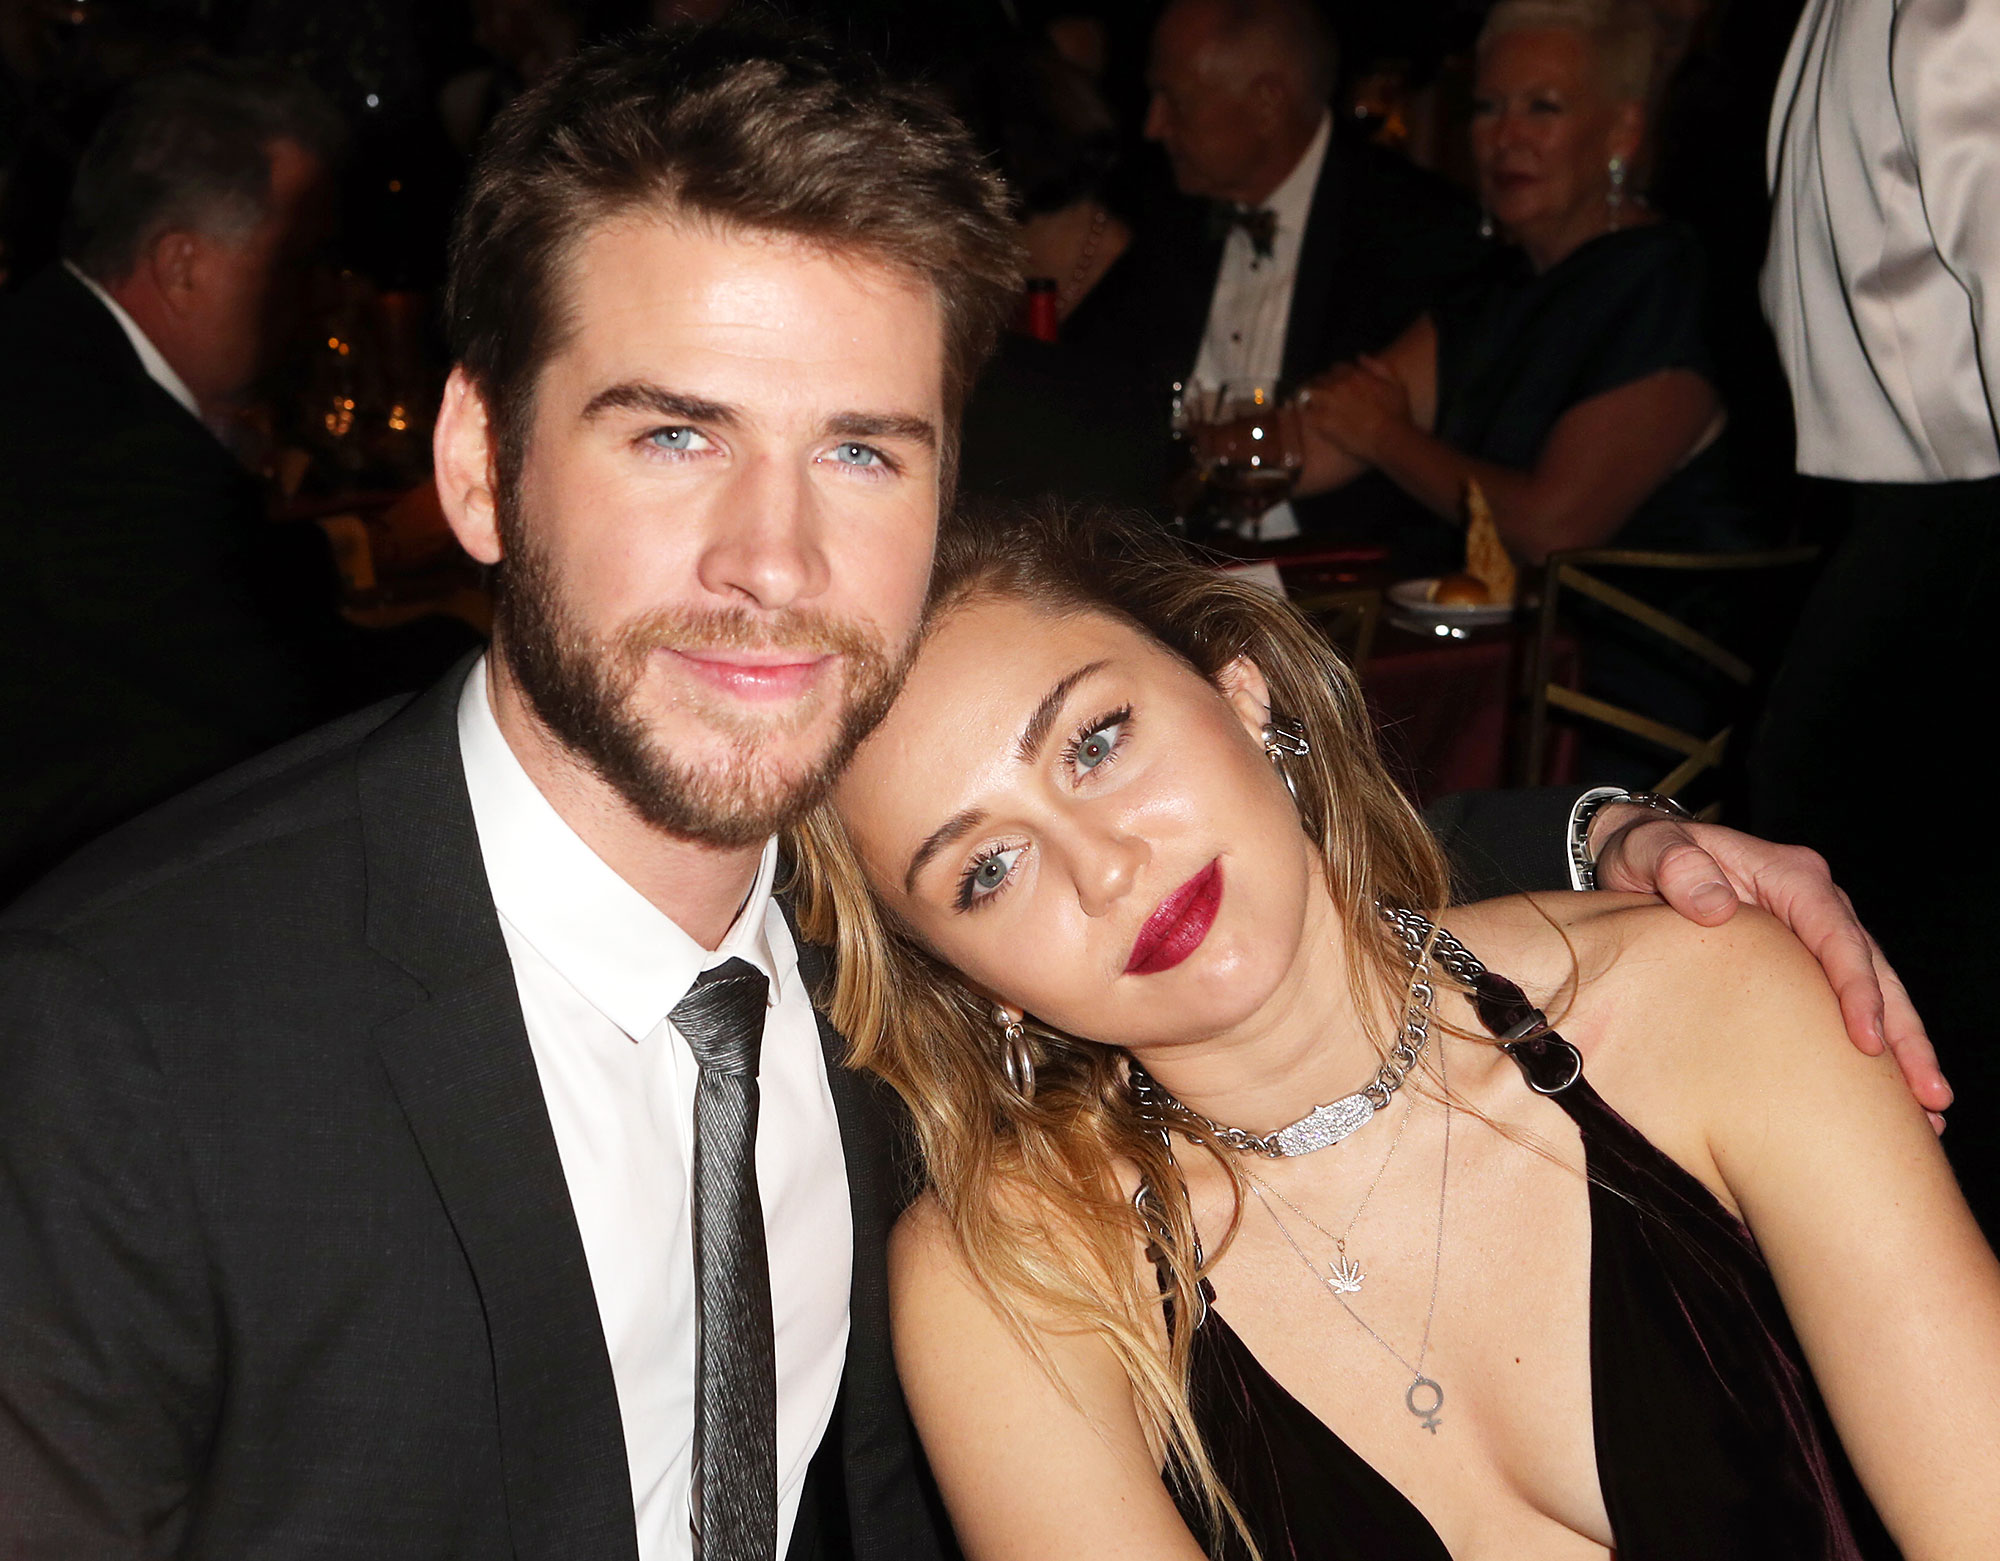 Miley Cyrus With Her head on Liam Hemsworth's Shoulder Wanted Her Marriage to Liam Hemsworth to Work More Than Anything